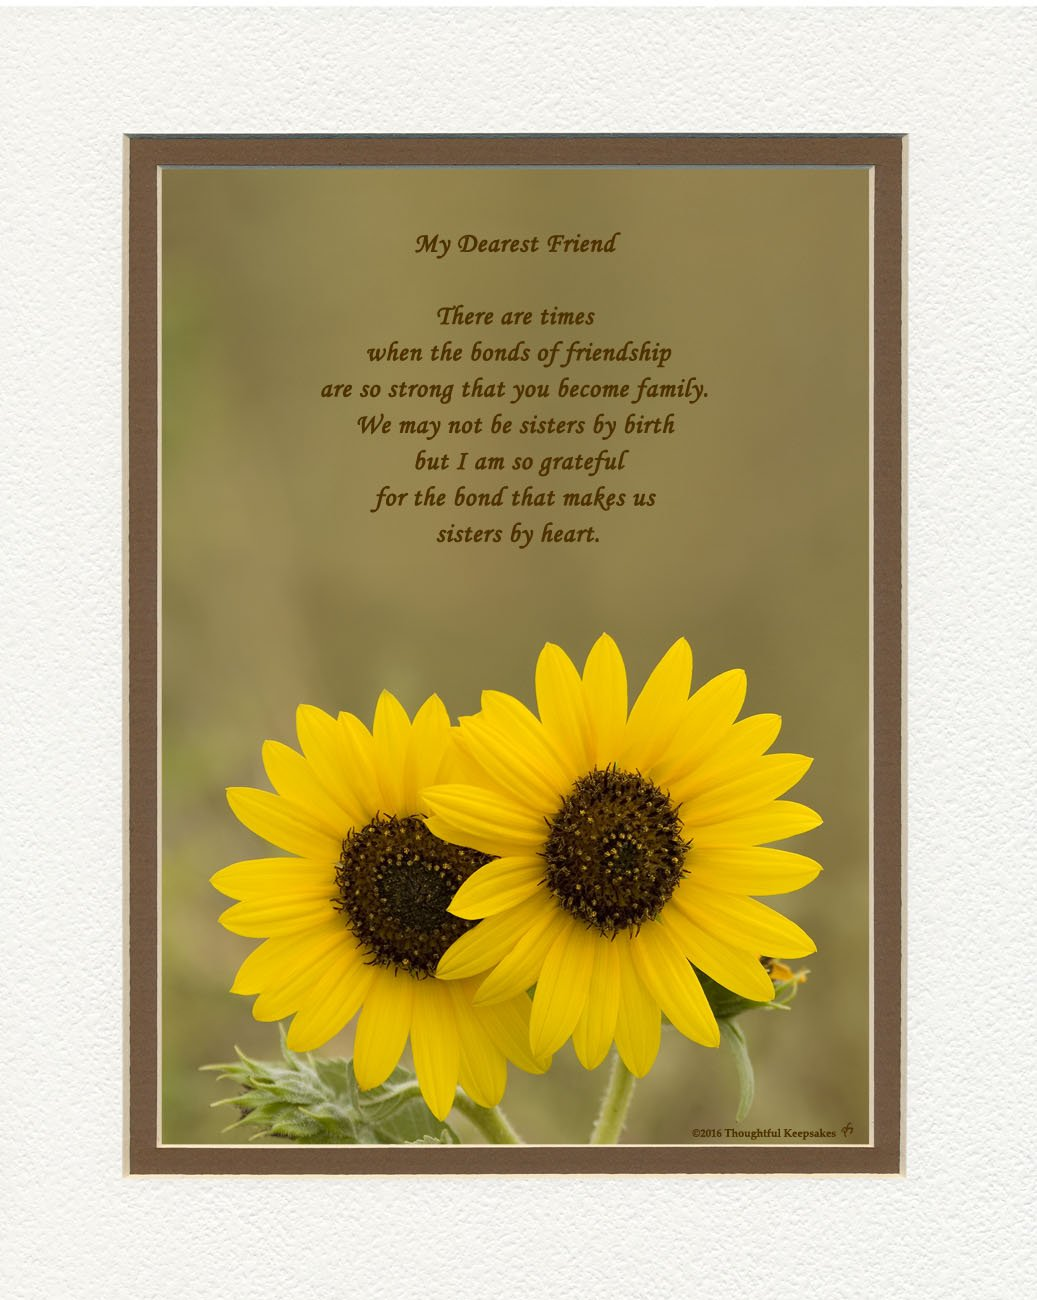 Friend Gift with ''Bonds of Friendship Makes Us Sisters By Heart'' Poem. Sunflowers Photo, 8x10 Double Matted. Special Birthday or Christmas Gifts for Best Friend.